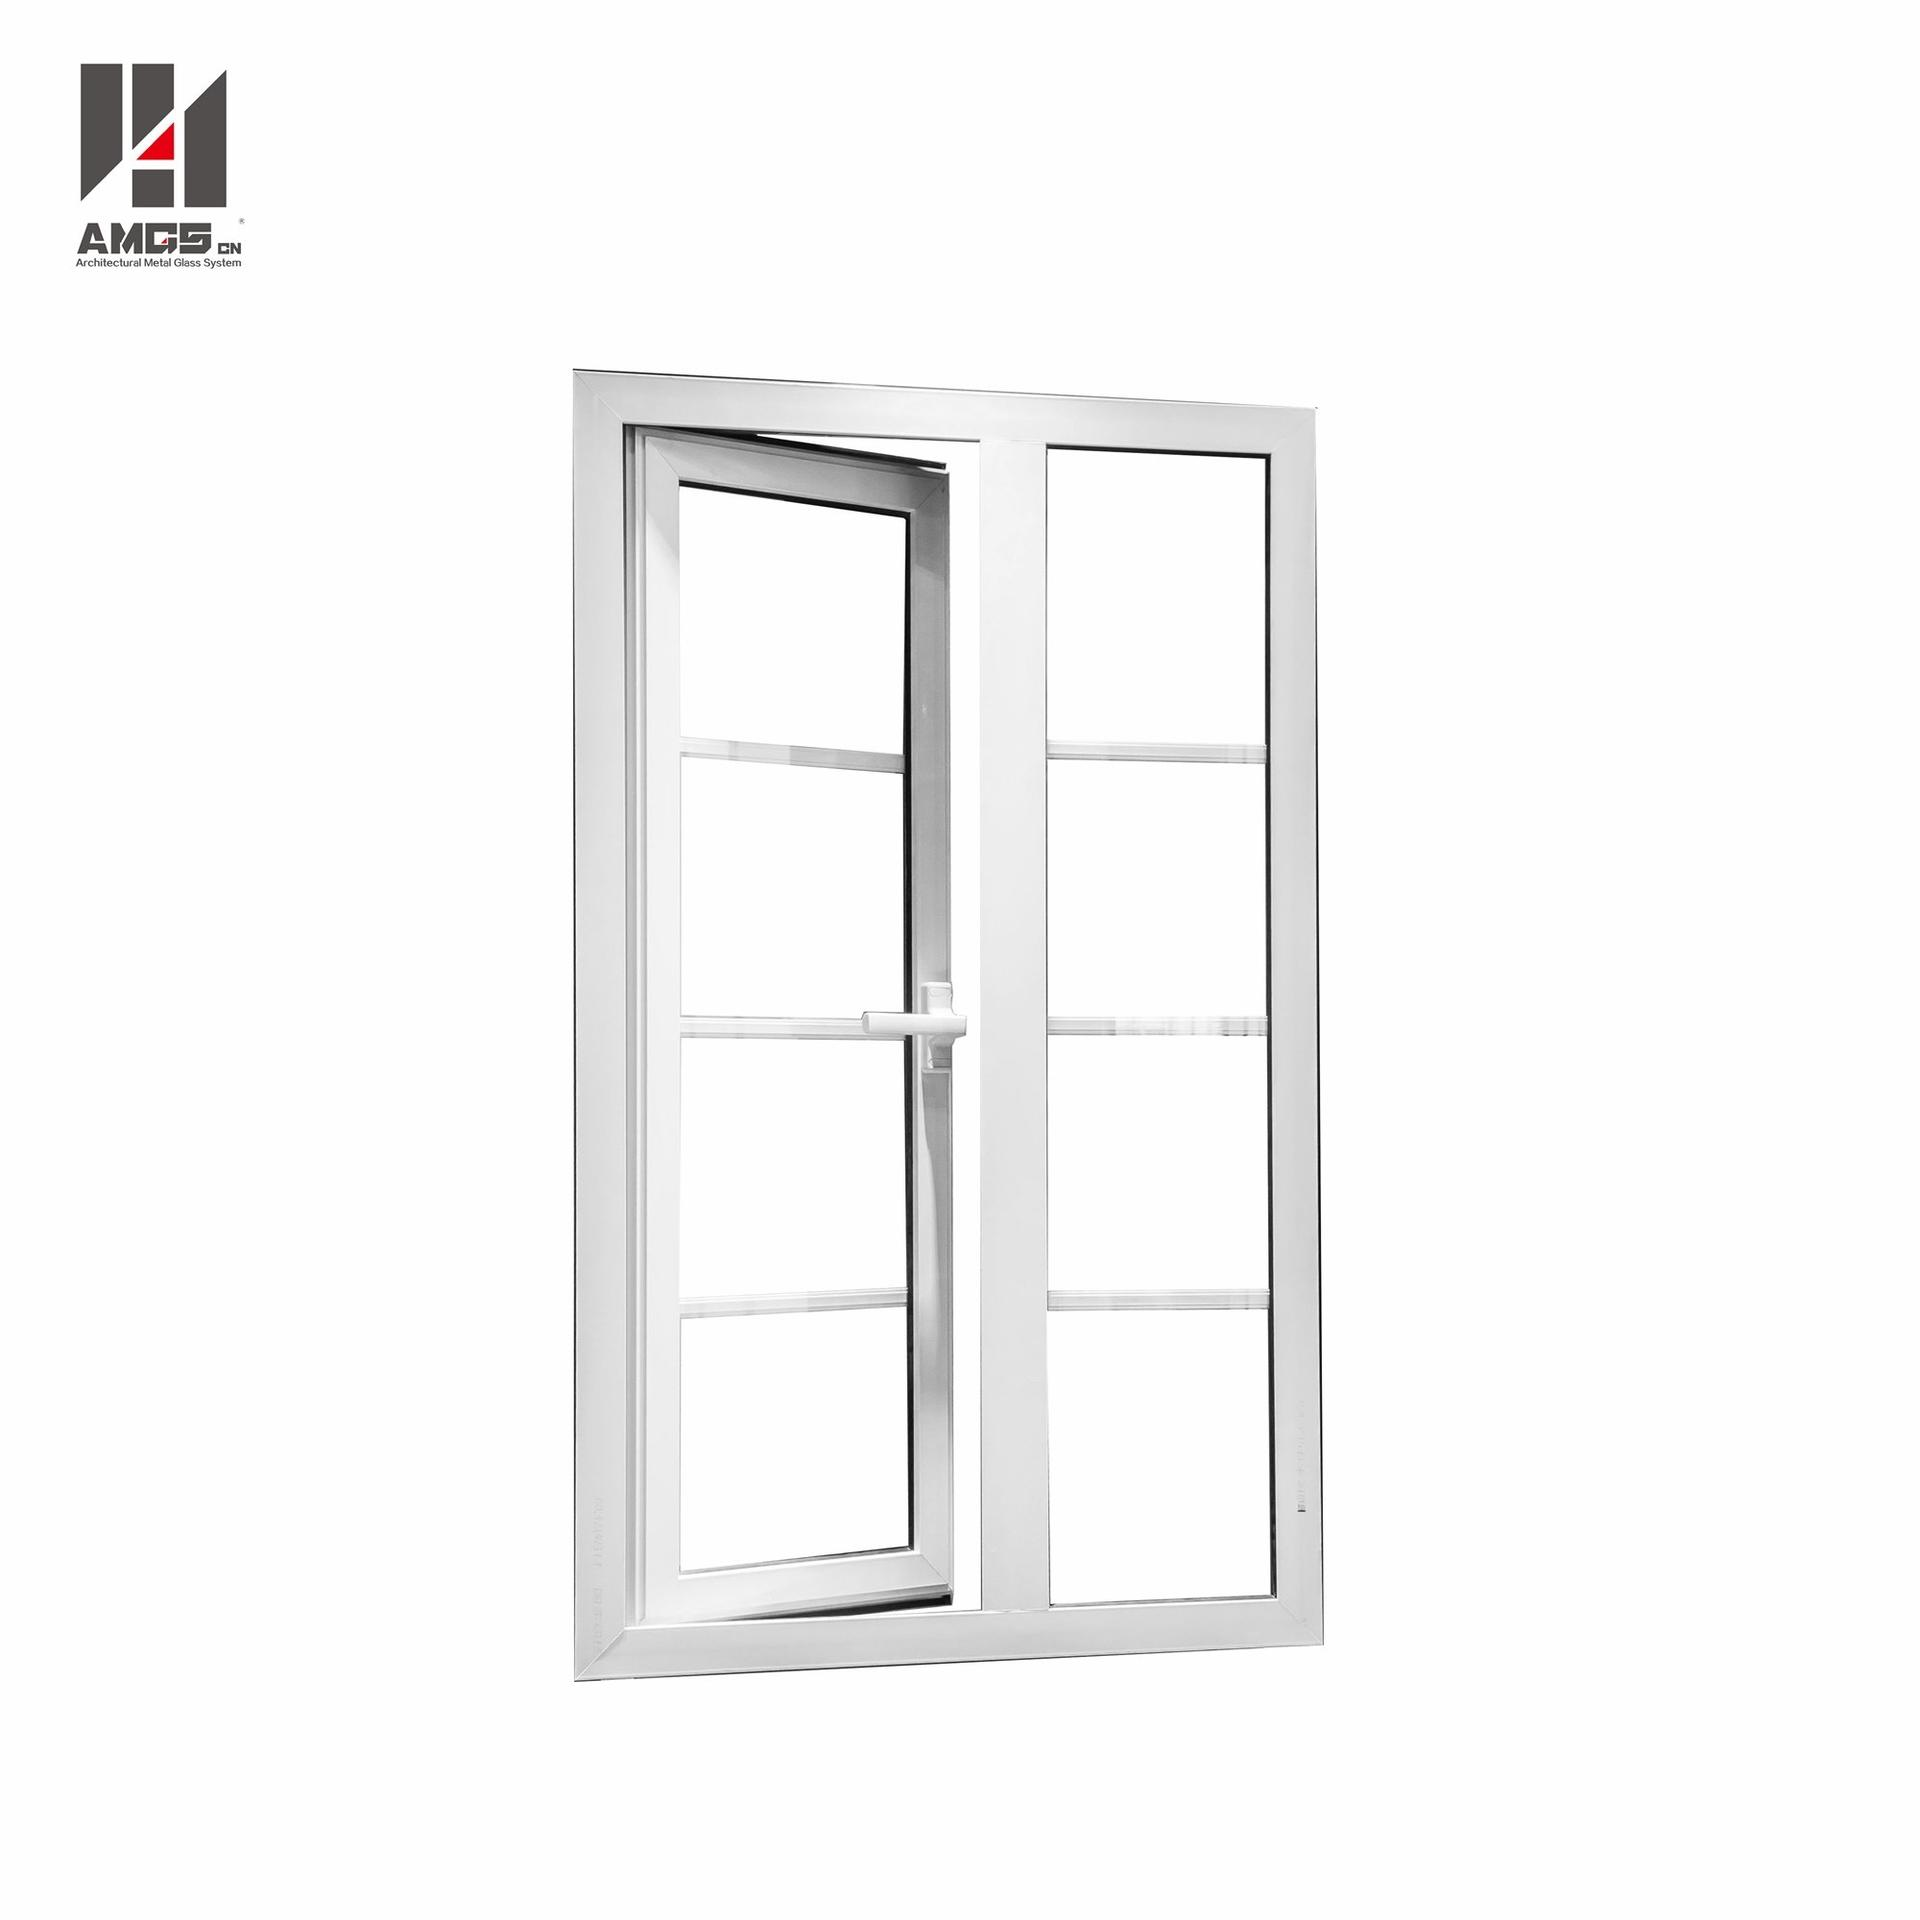 White Aluminum Casement Doors Windows With Grill Design